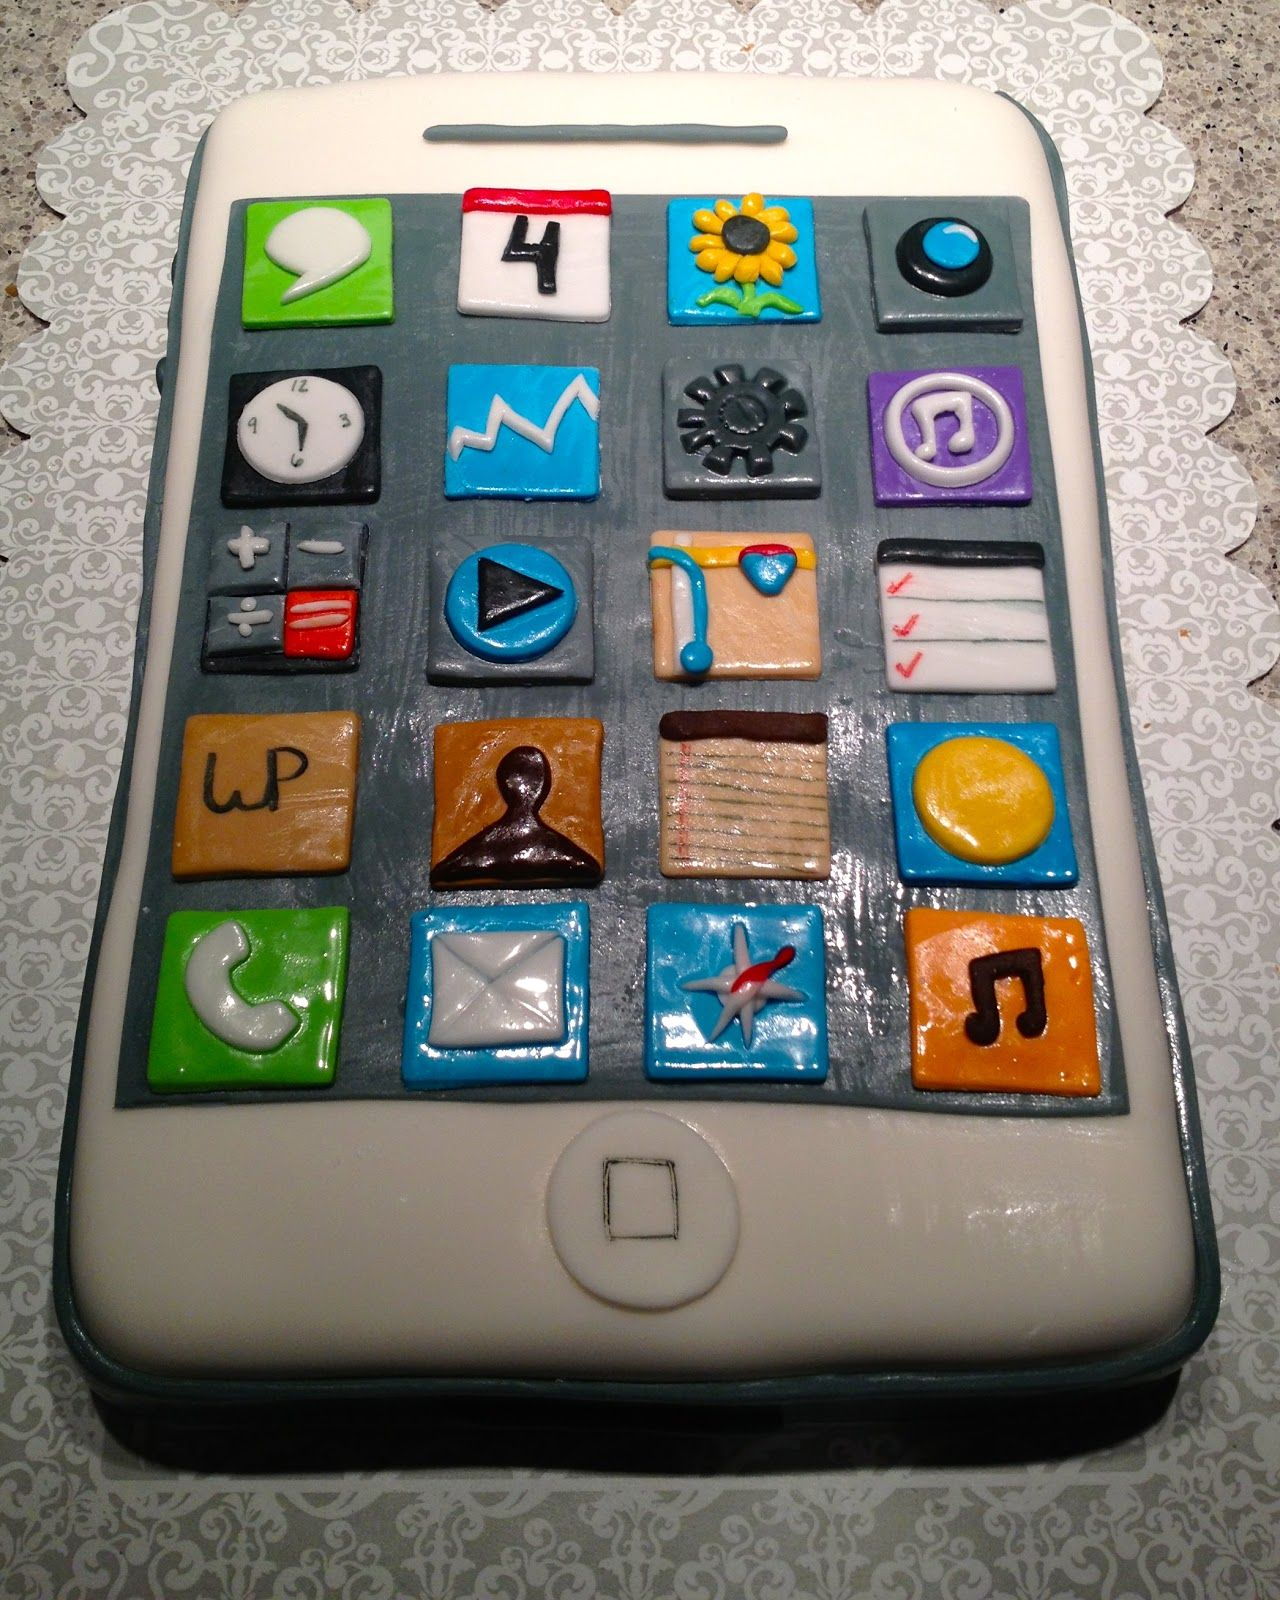 Cupcakes Are The New Black OMG Thats an iPhone cake LOL how